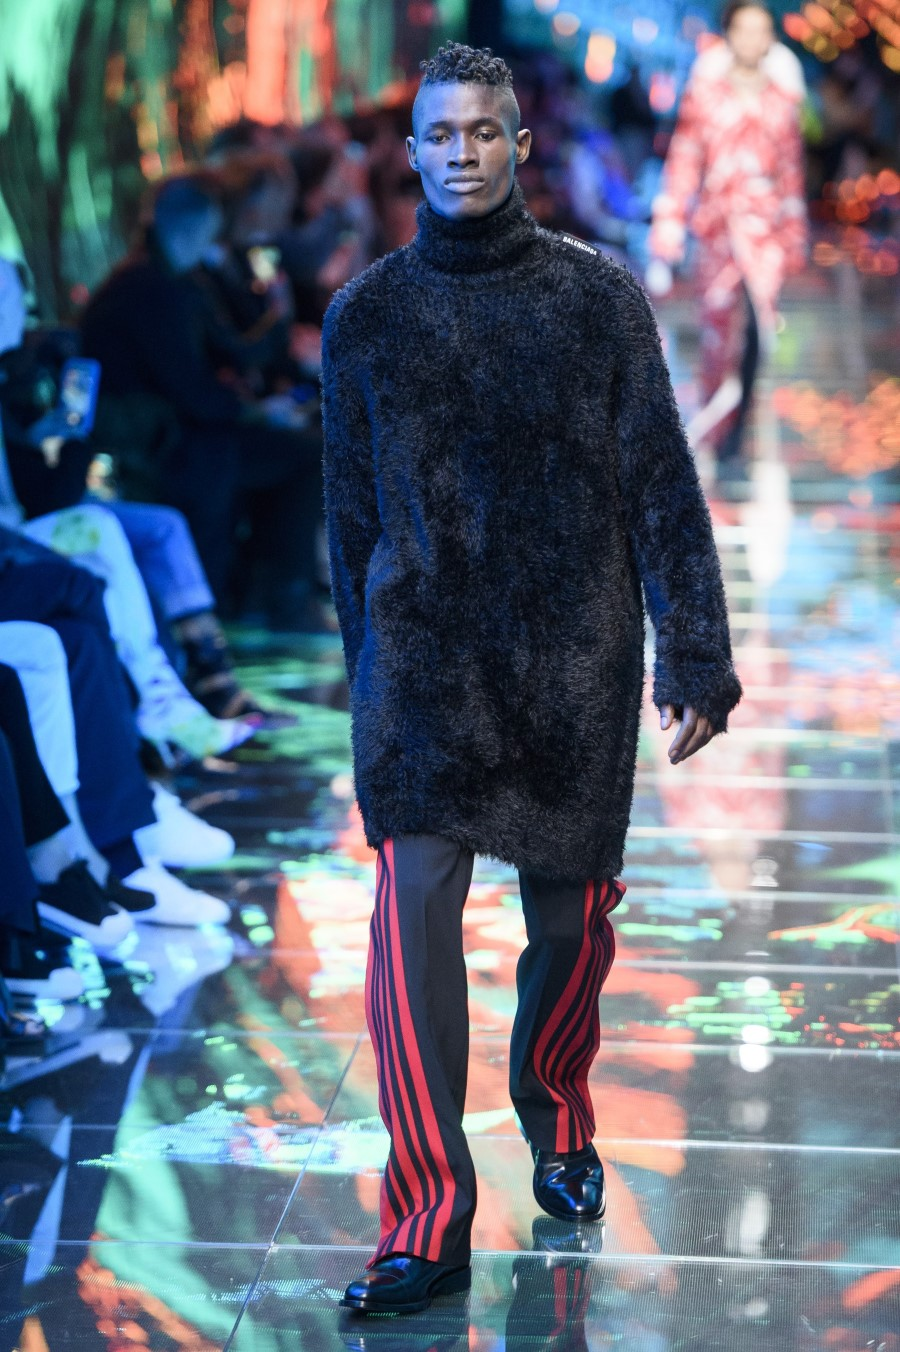 Balenciaga Printemps/Été 2019 – Paris Fashion Week